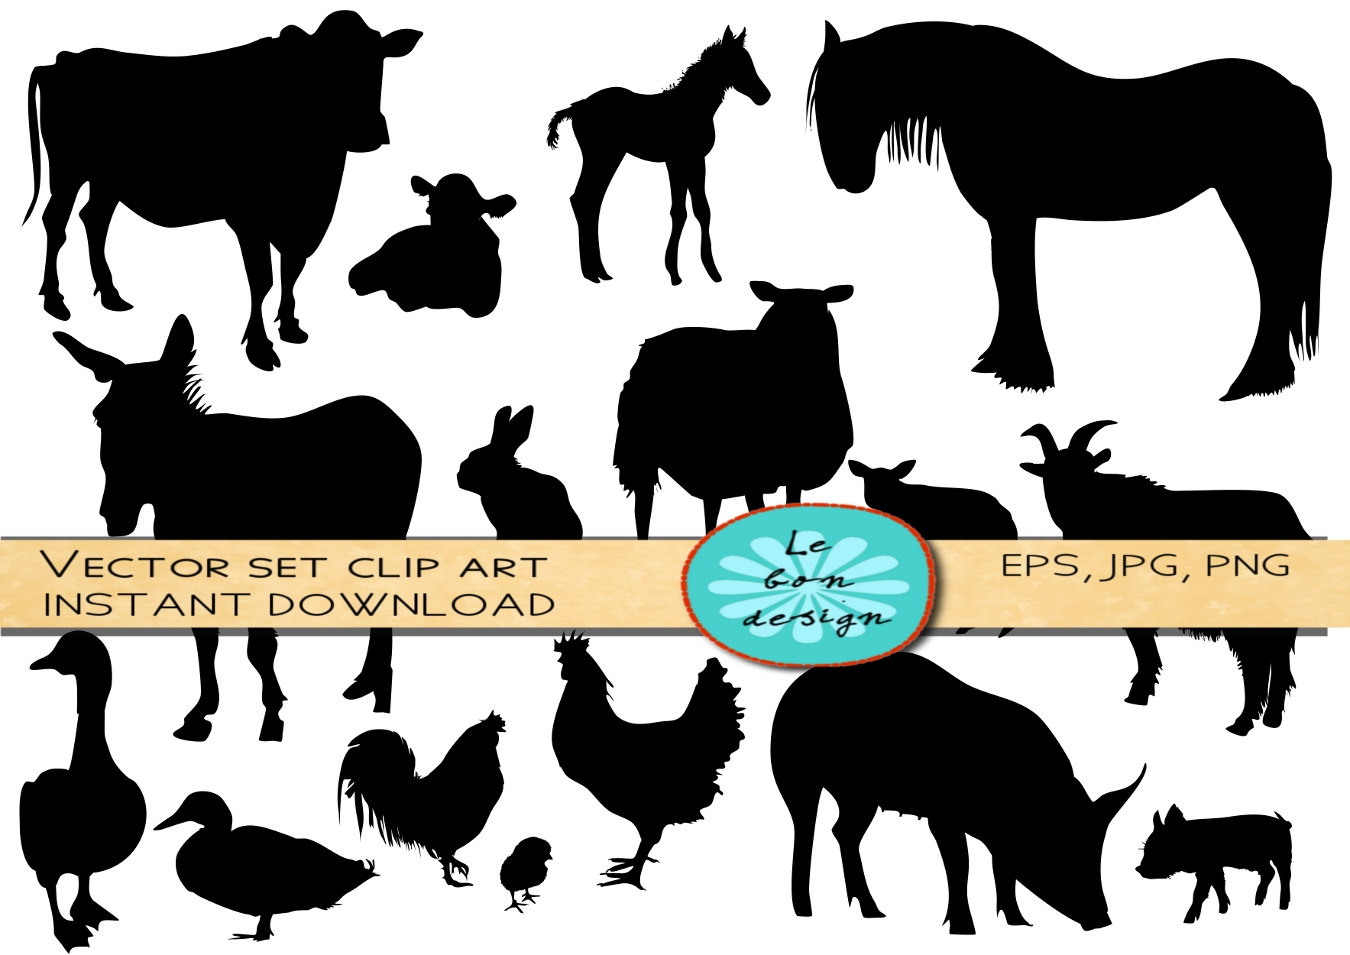 Farm at getdrawings com. Agriculture clipart silhouette